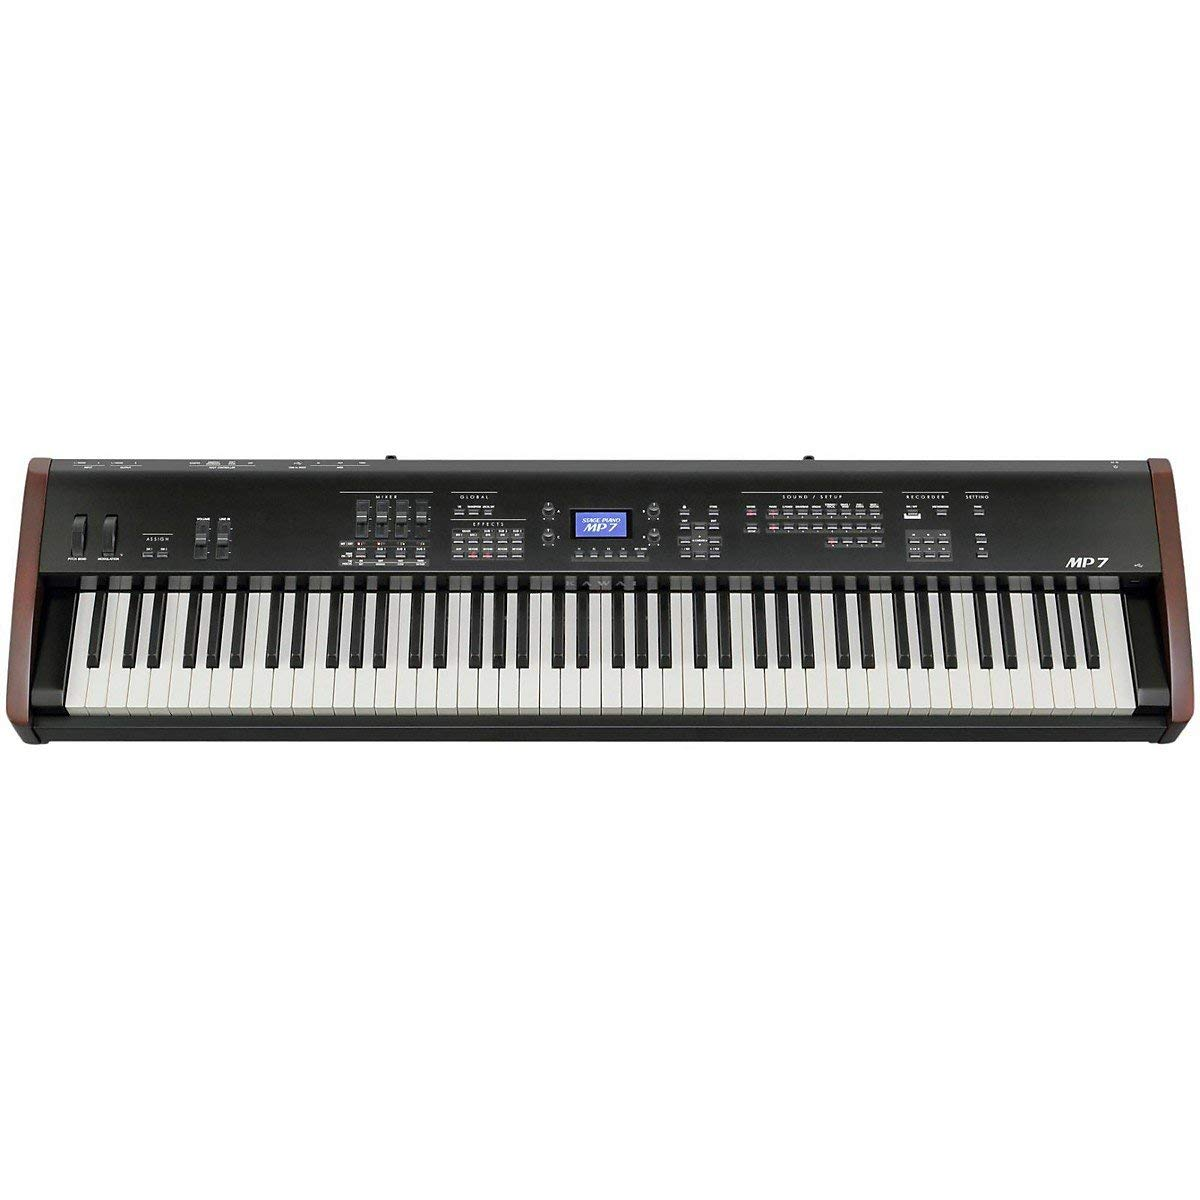 Kawai MP7 Professional Digital Stage Piano and Master Controller Review 2020